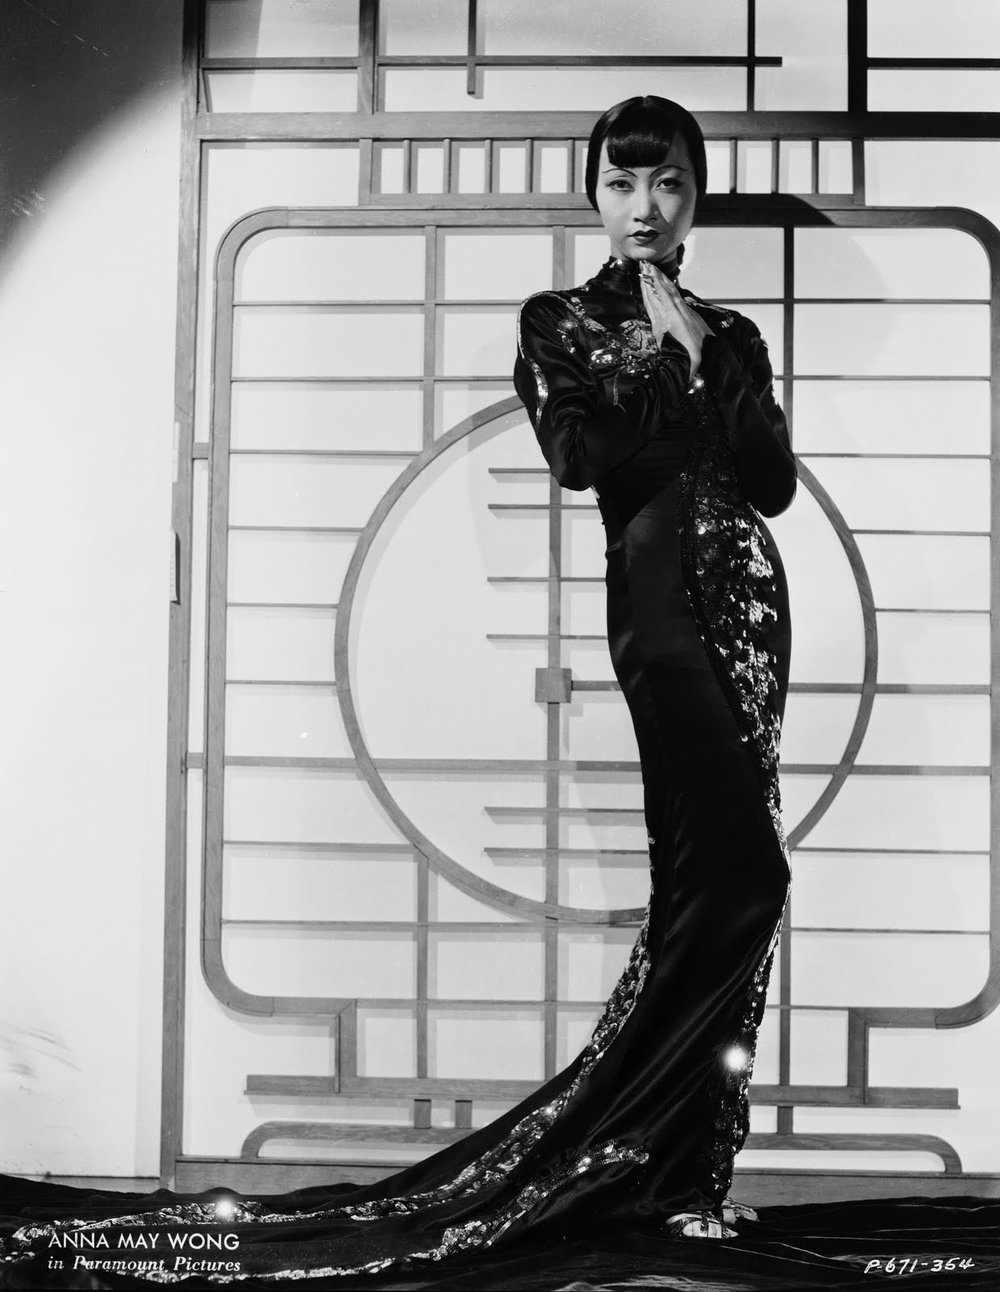 004-anna-may-wong-theredlist.jpg